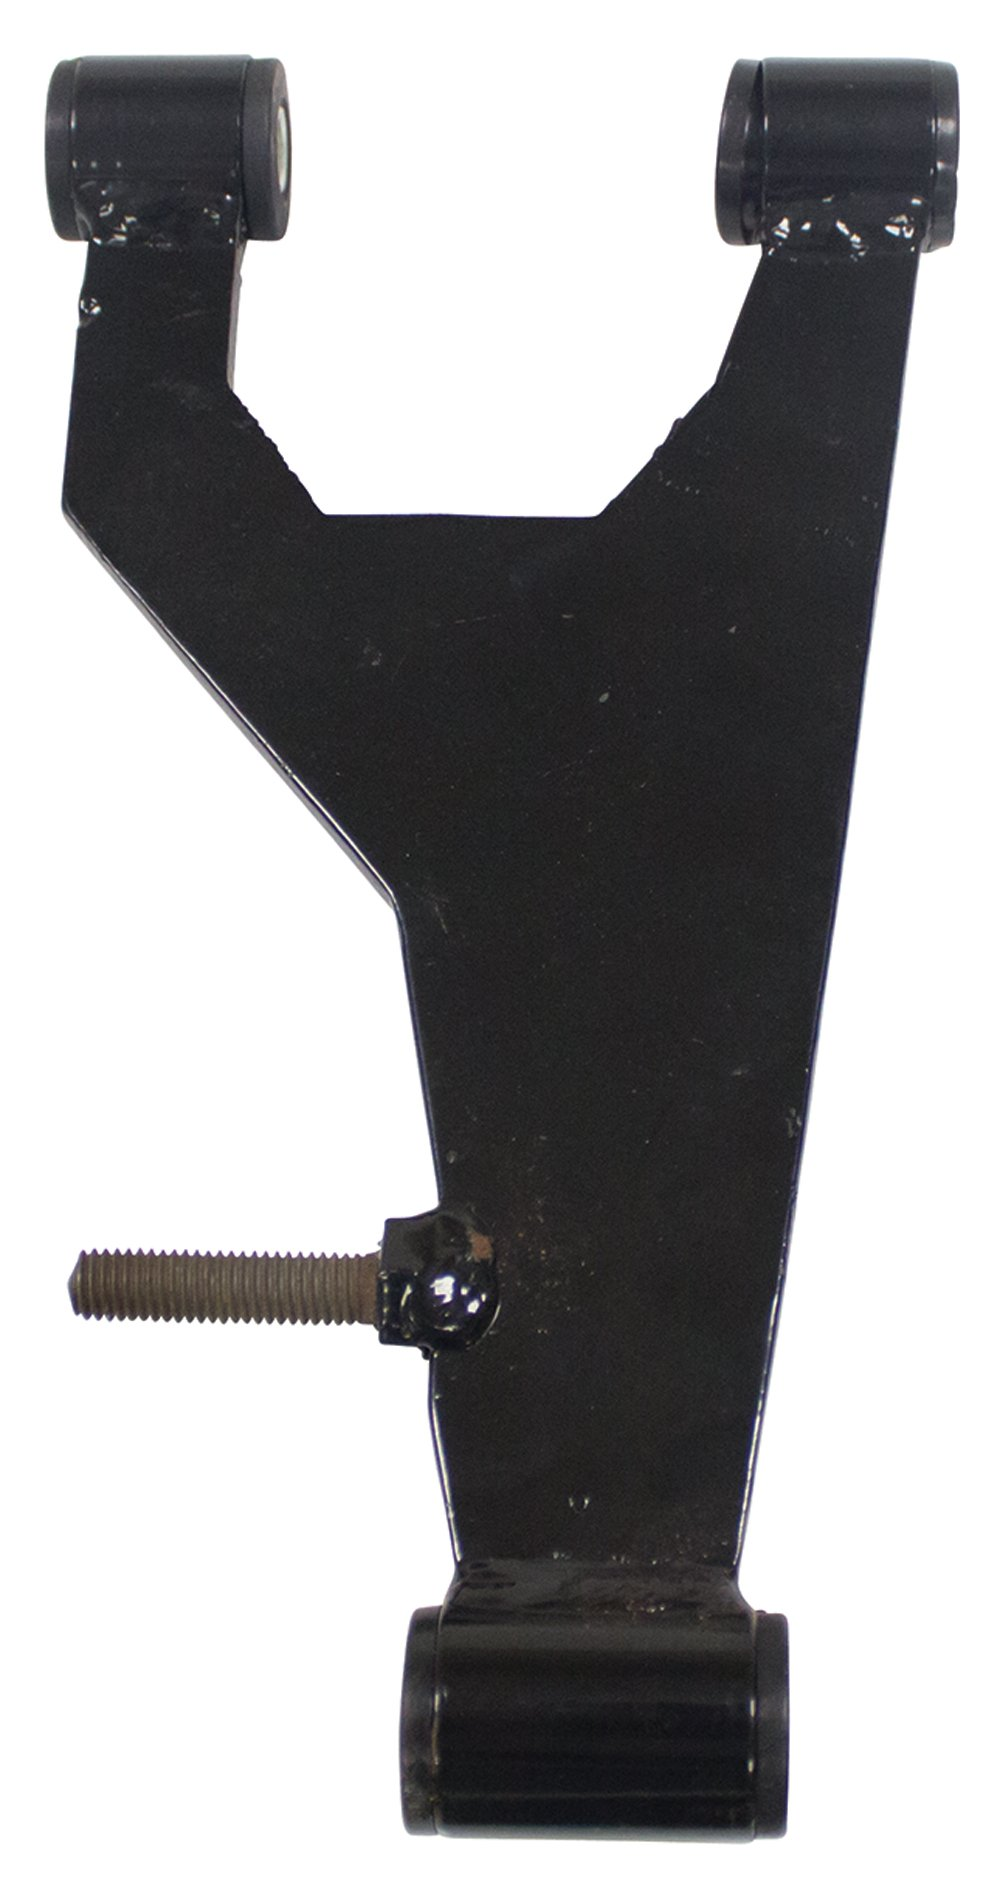 Stens 285-033 Delta Plate Sub Assembly, Replaces Club Car: 1016353, Fits Club Car: DS, 1993 and Newer